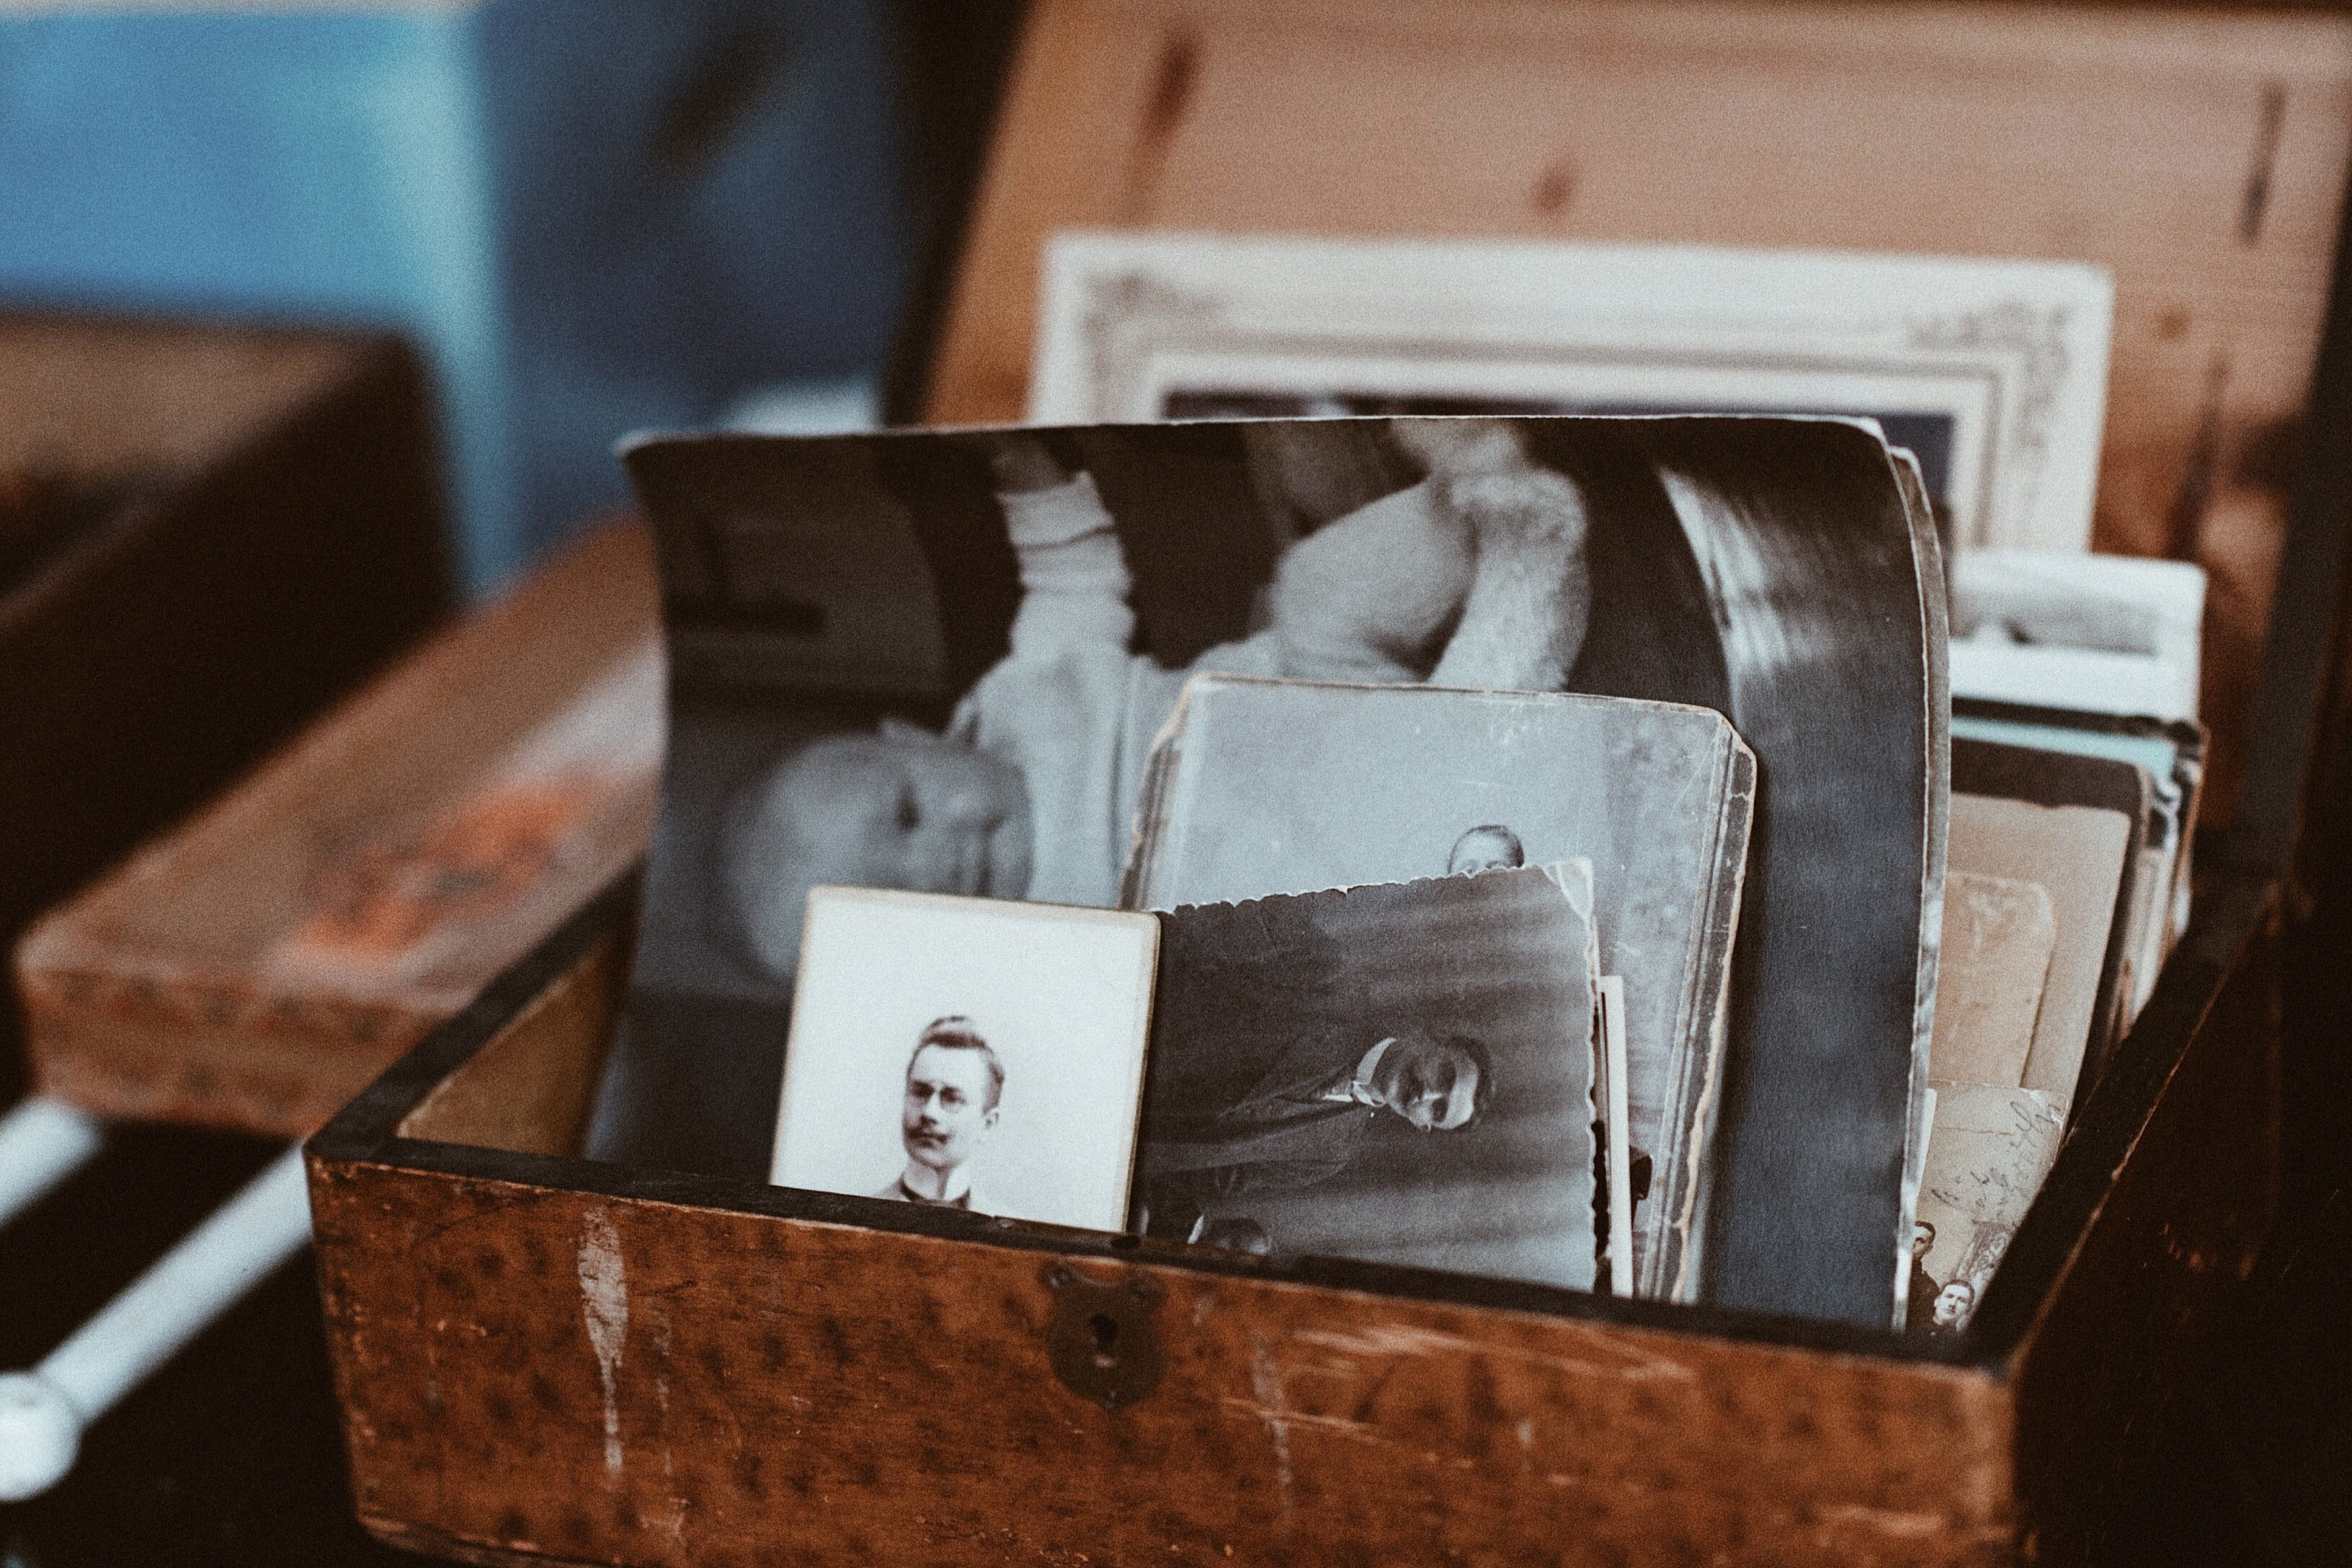 Melissa sorted through her childhood photographs and discovered the homeless man was her father | Photo: Unsplash